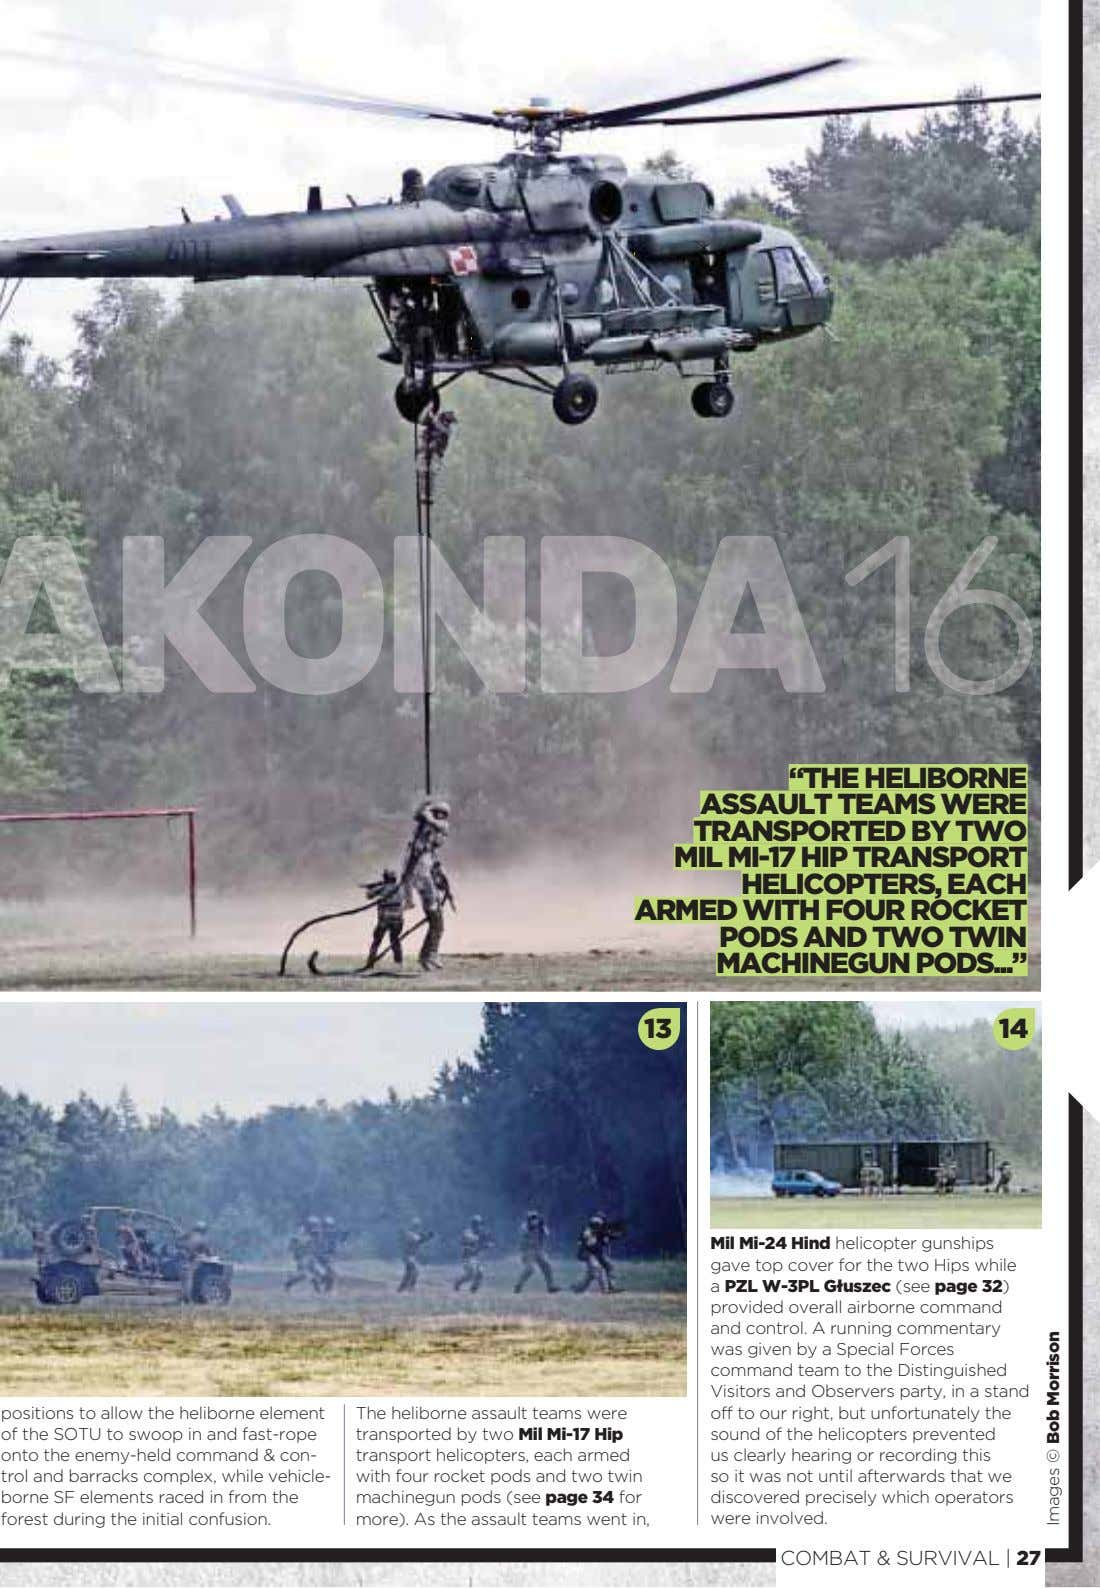 """THE HELIBORNE ASSAULT TEAMS WERE TRANSPORTED BY TWO MIL MI-17 HIP TRANSPORT HELICOPTERS, EACH ARMED"